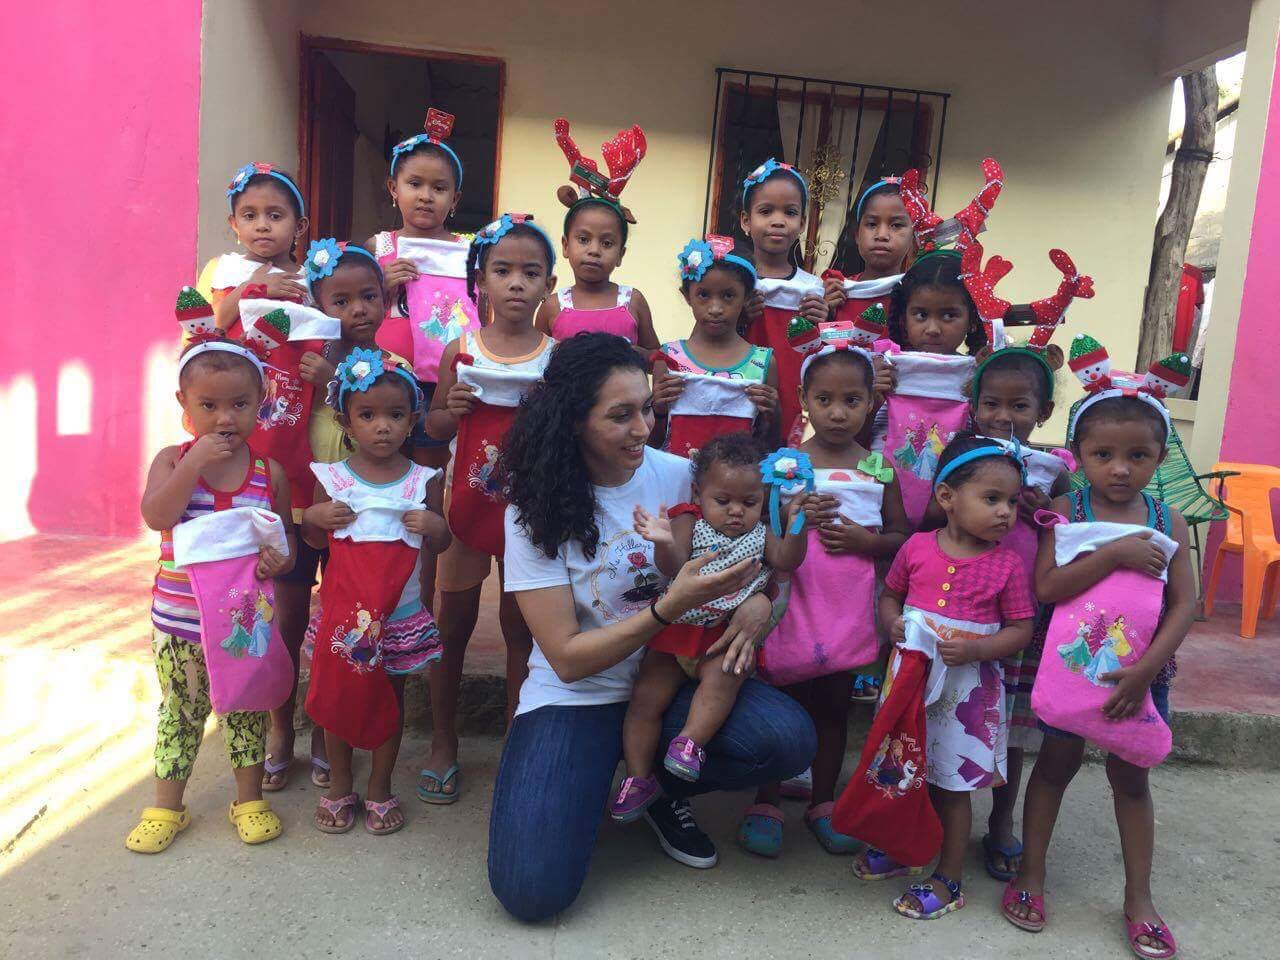 Mentee Arleen giving back in Colombia